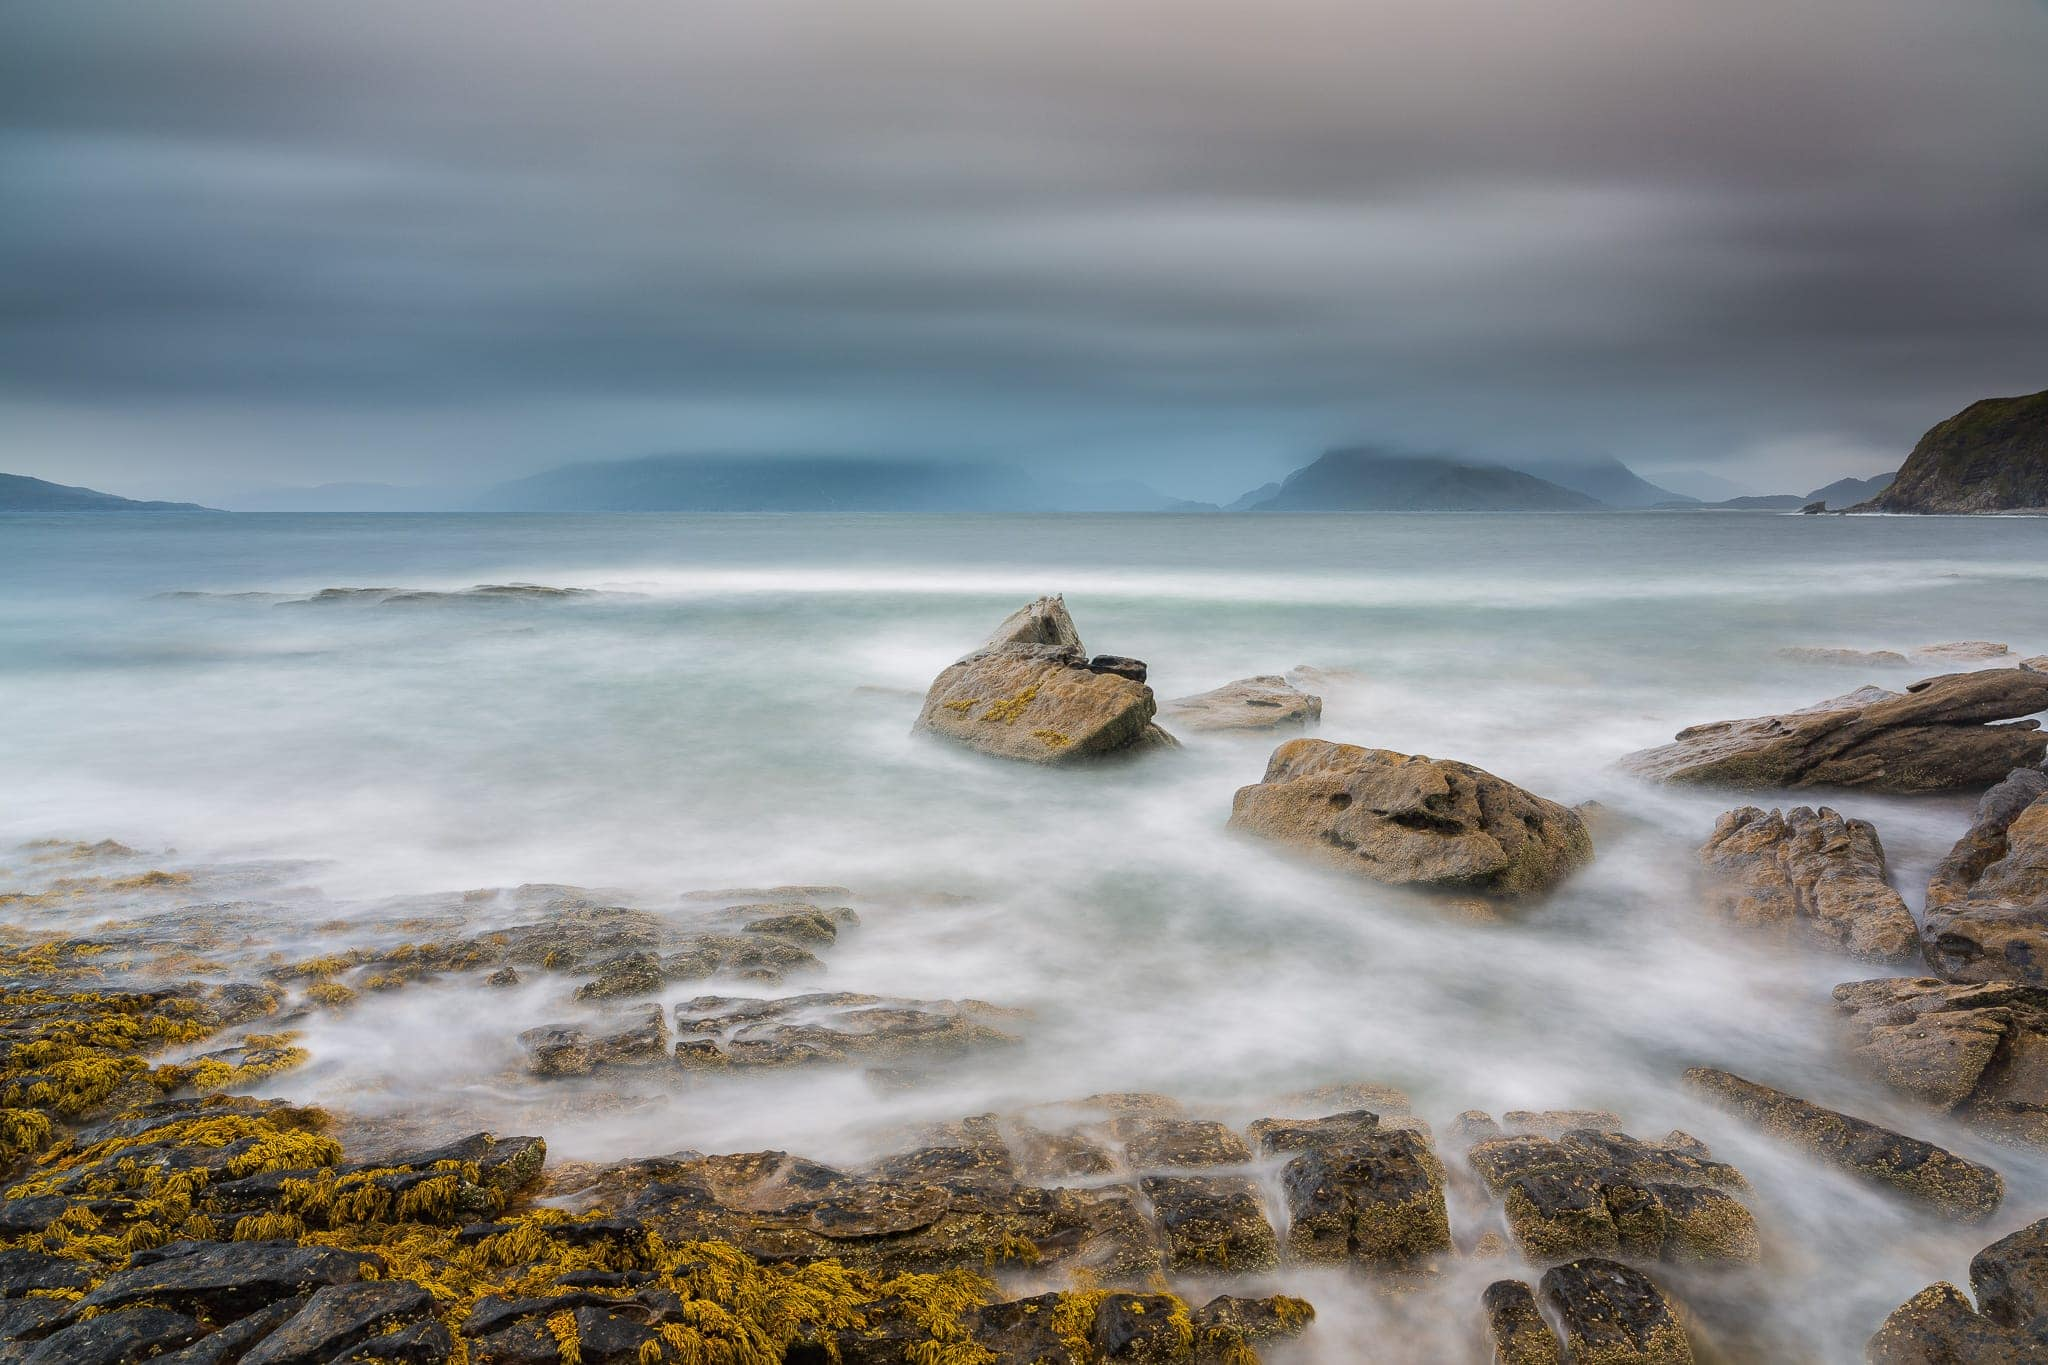 Francesco Gola Seascape Landscape Photography Long Exposure Elgol Scotland Skye Storm